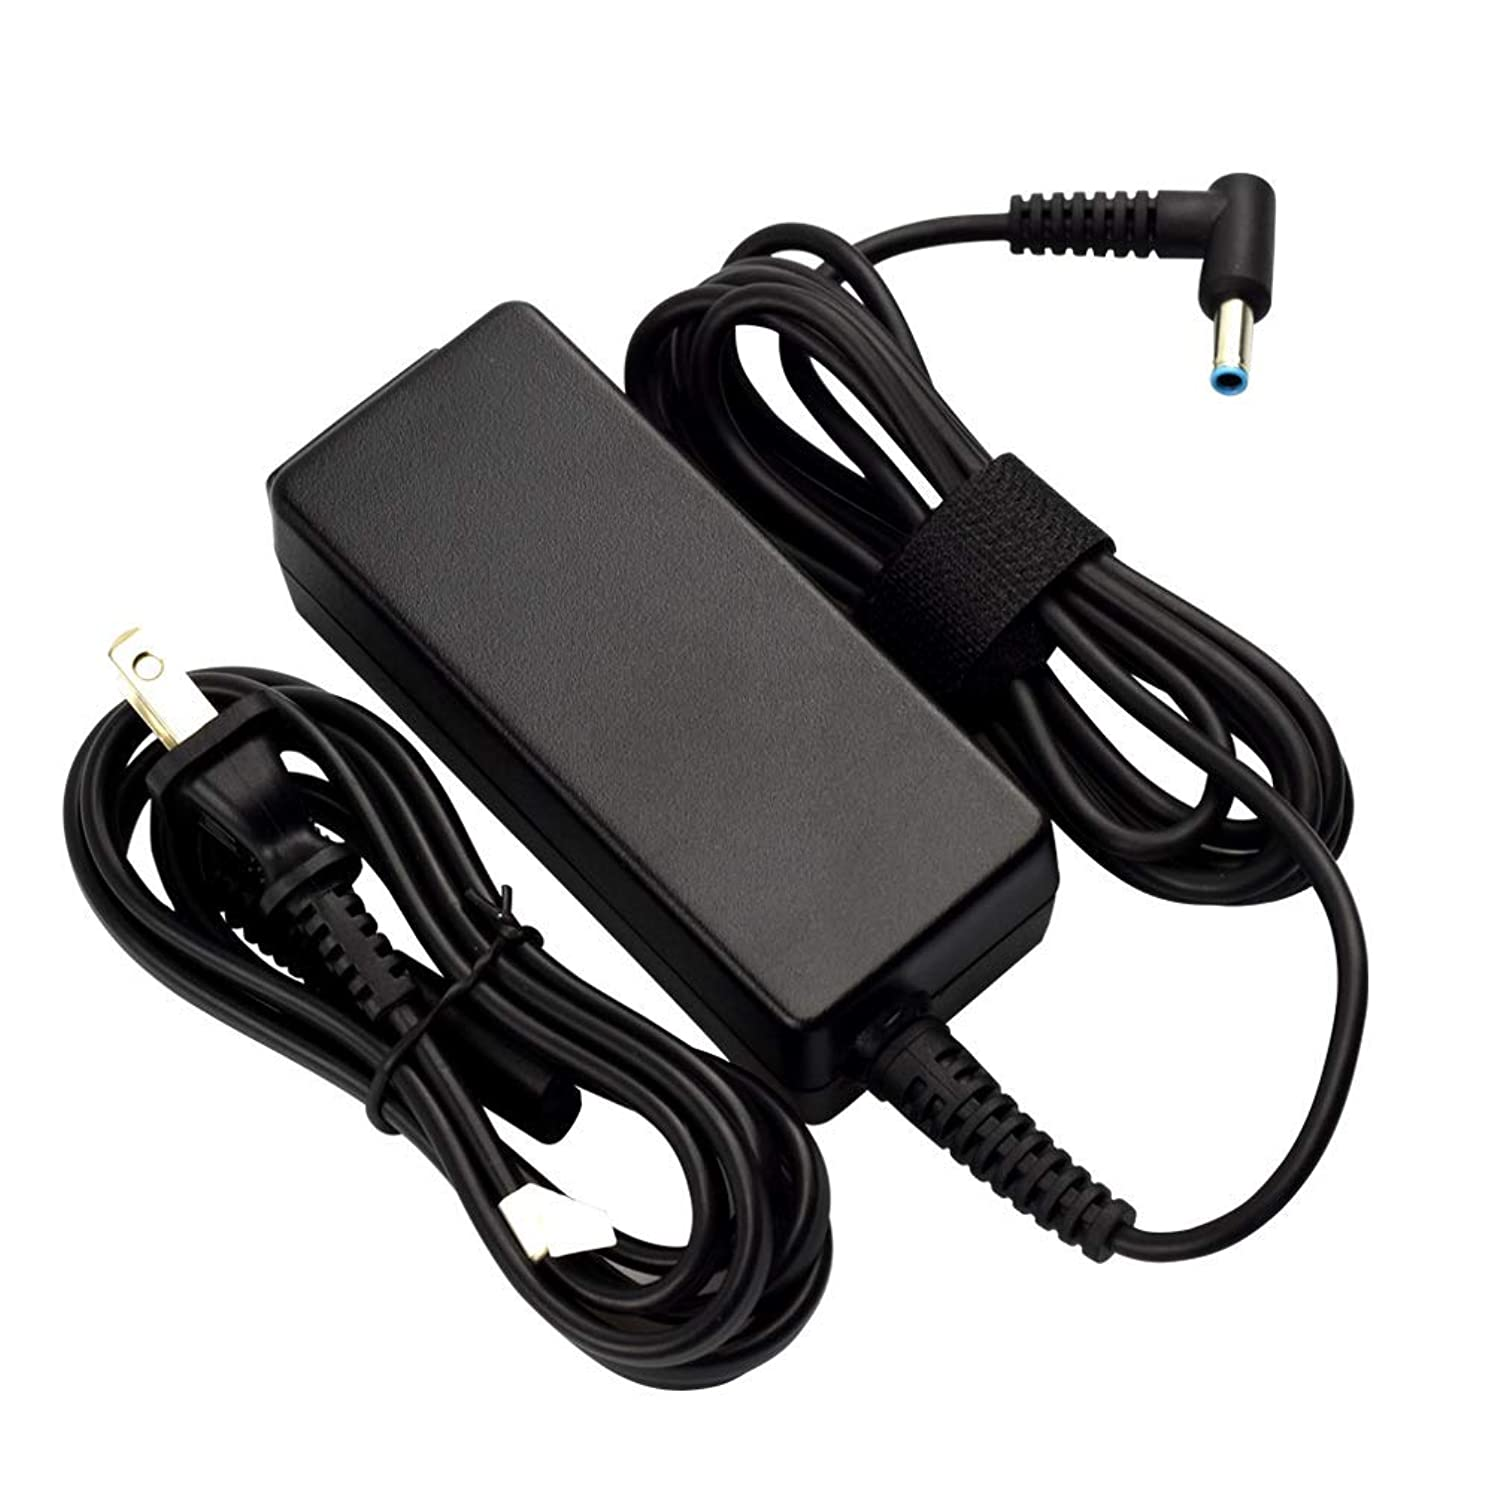 AC Charger Fit for HP 15-ay087cl Notebook Power Supply Adapter Cord